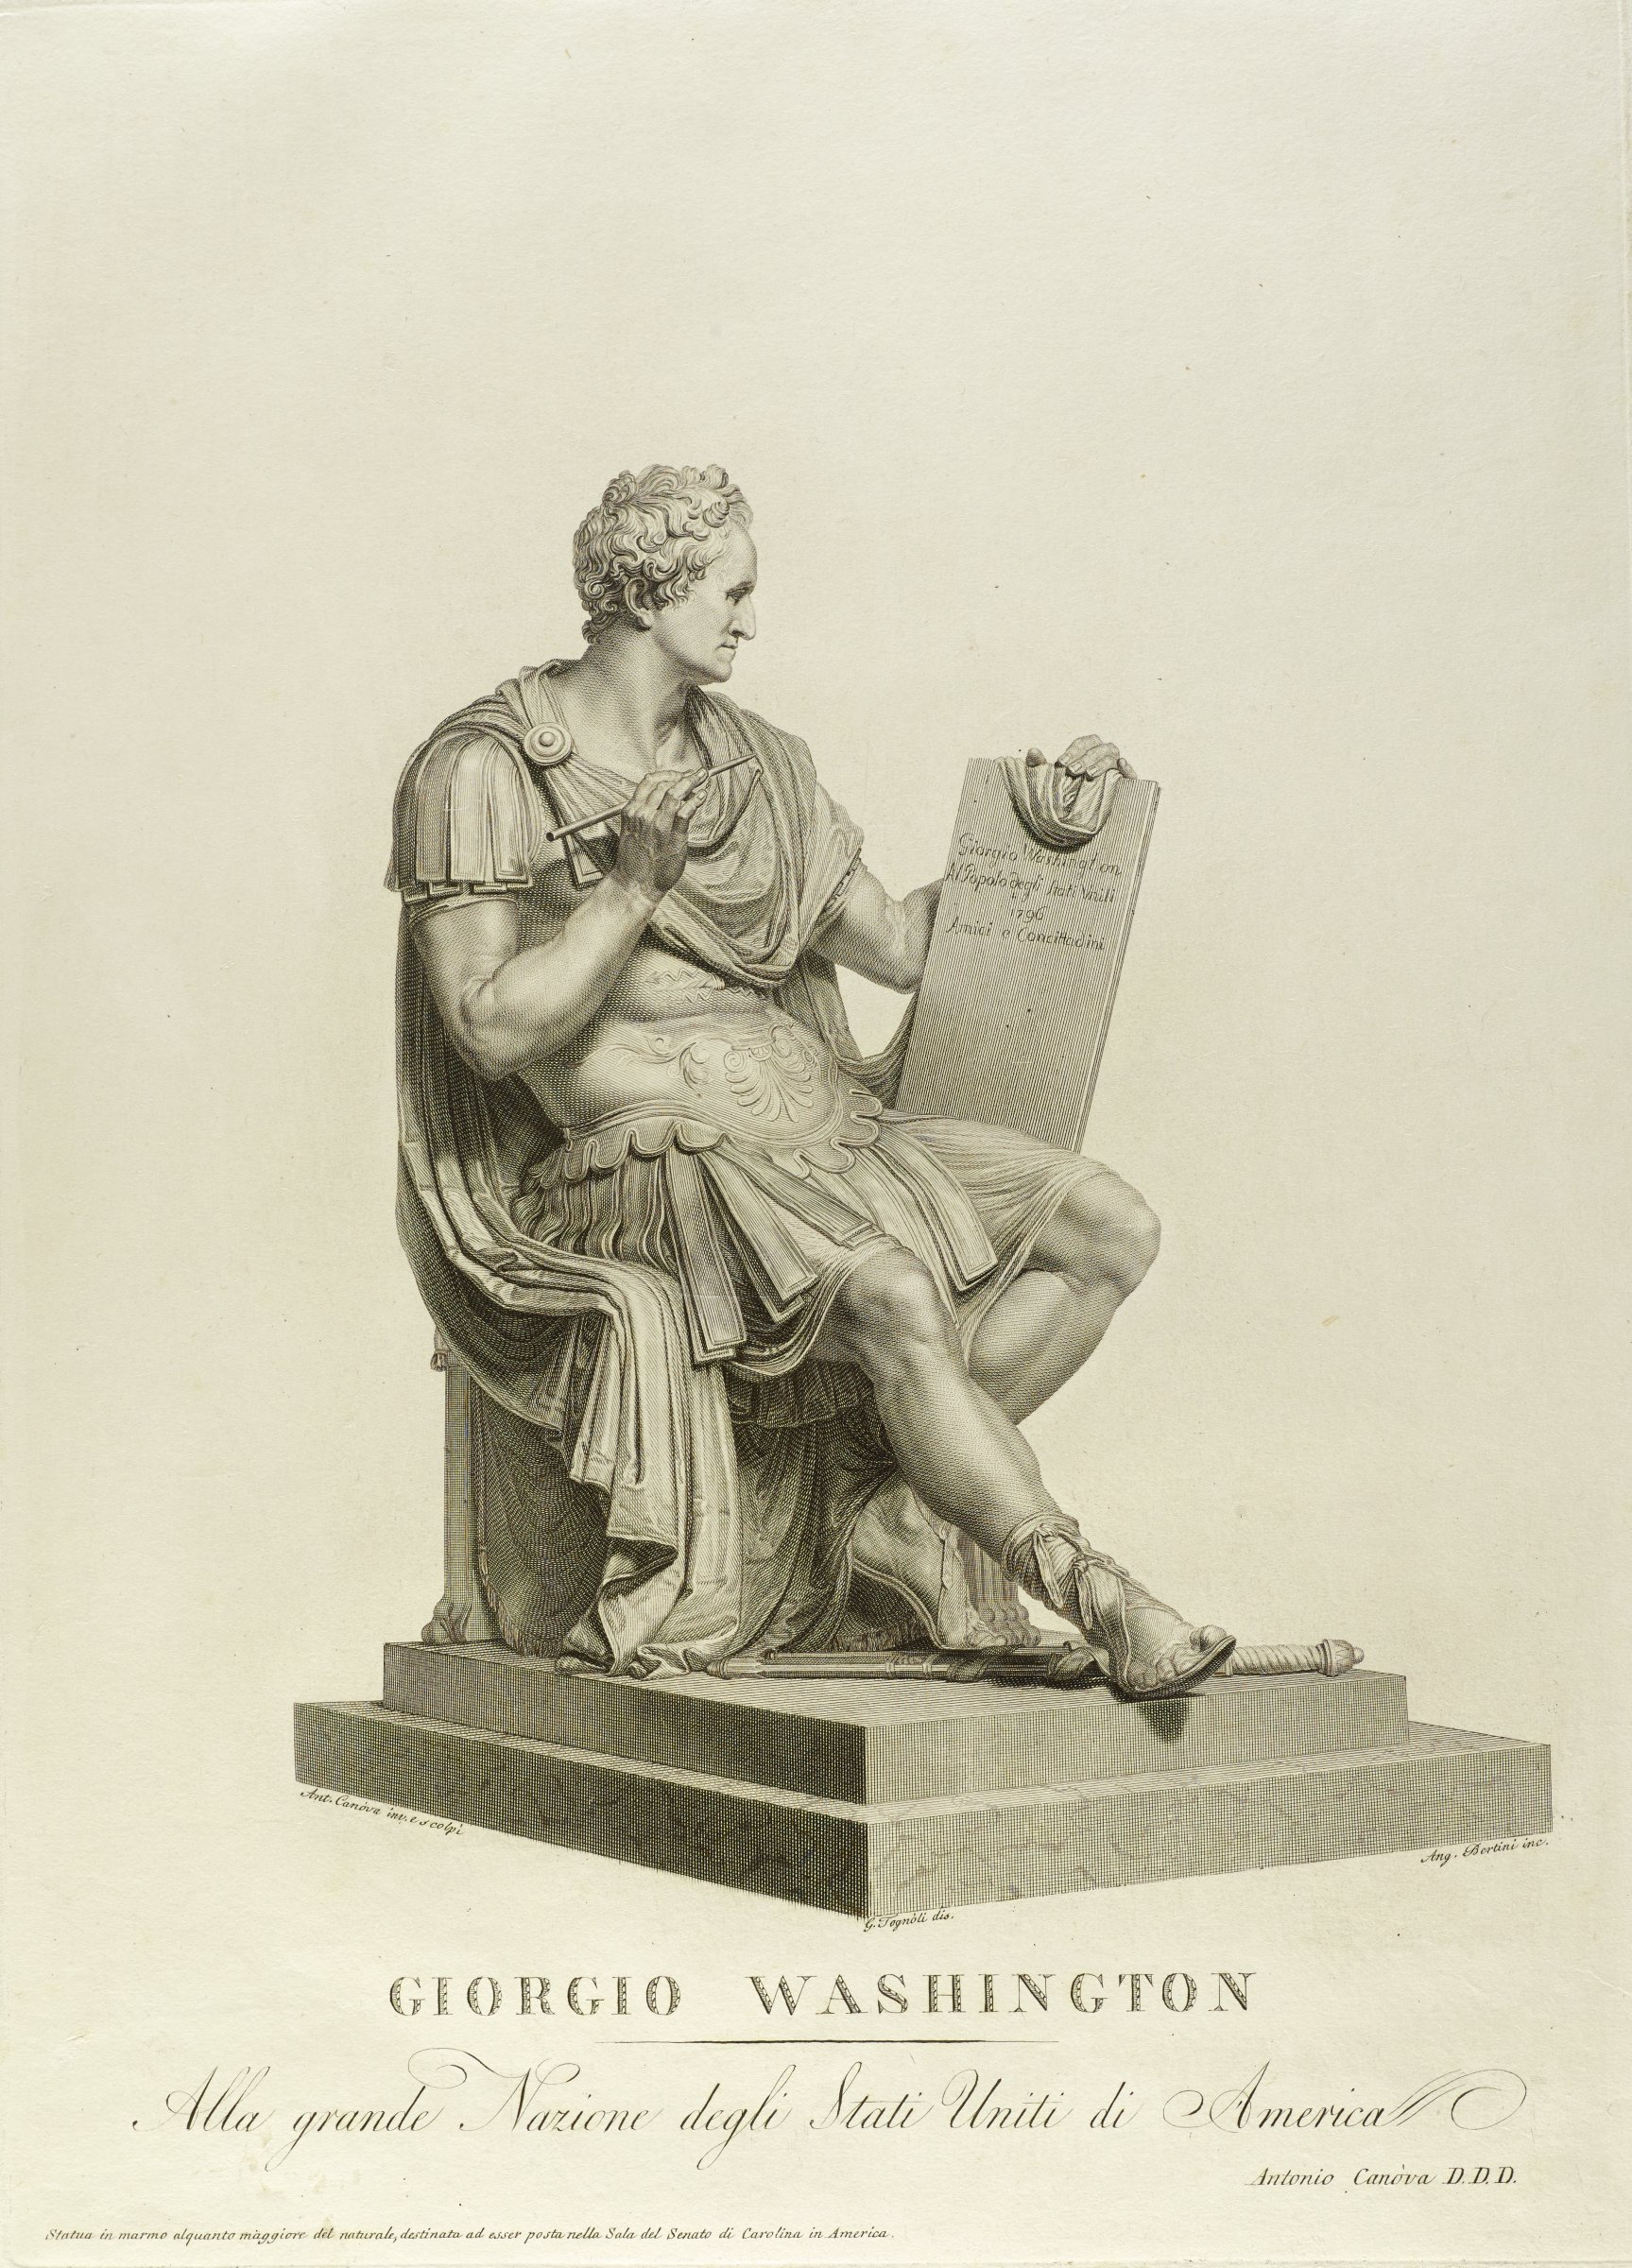 A man in Roman costume sits on a pedestal. He holds a table in his left hand and a writing utensil in his right hand.